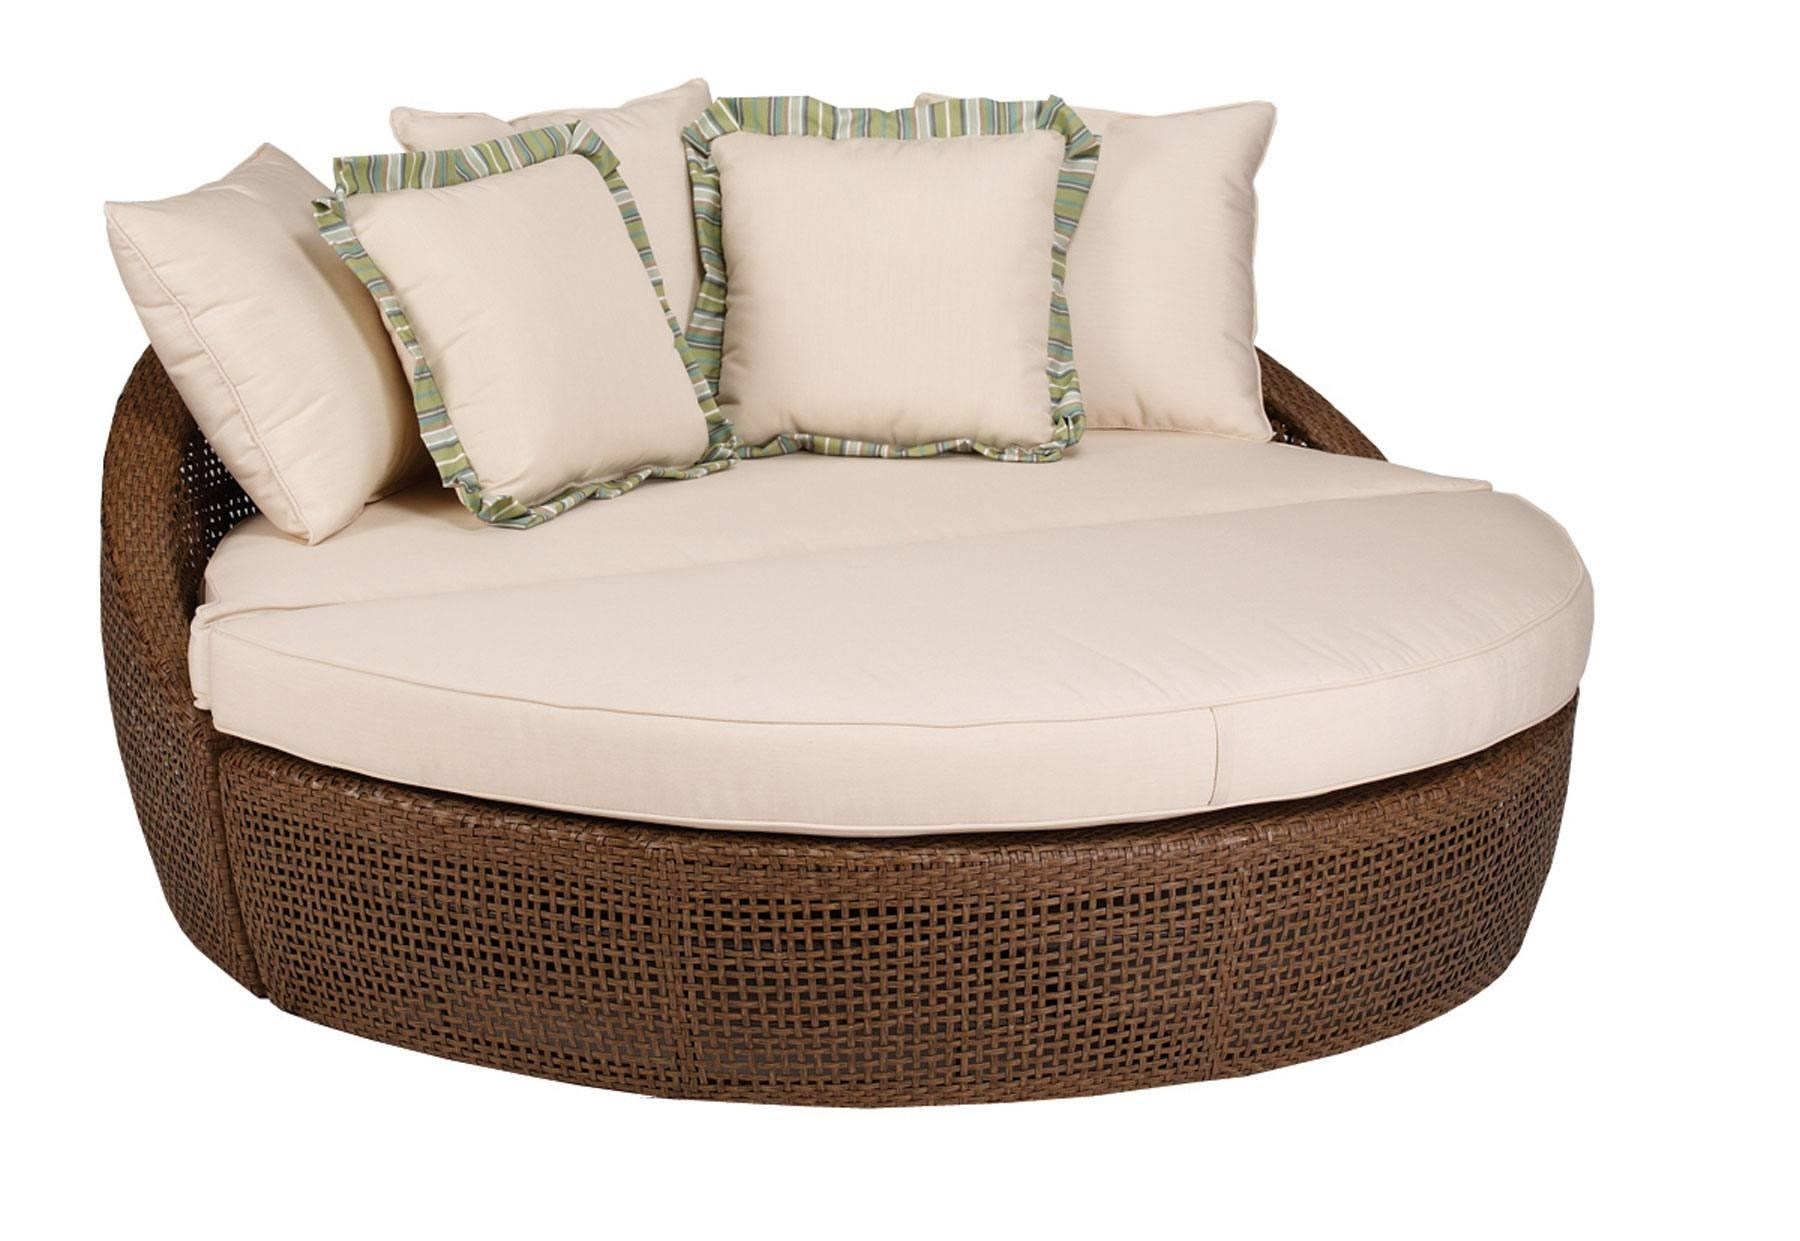 Best Chaise Lounge Sofa | Design Ideas & Decors Pertaining To Sofa Lounge Chairs (Image 4 of 20)